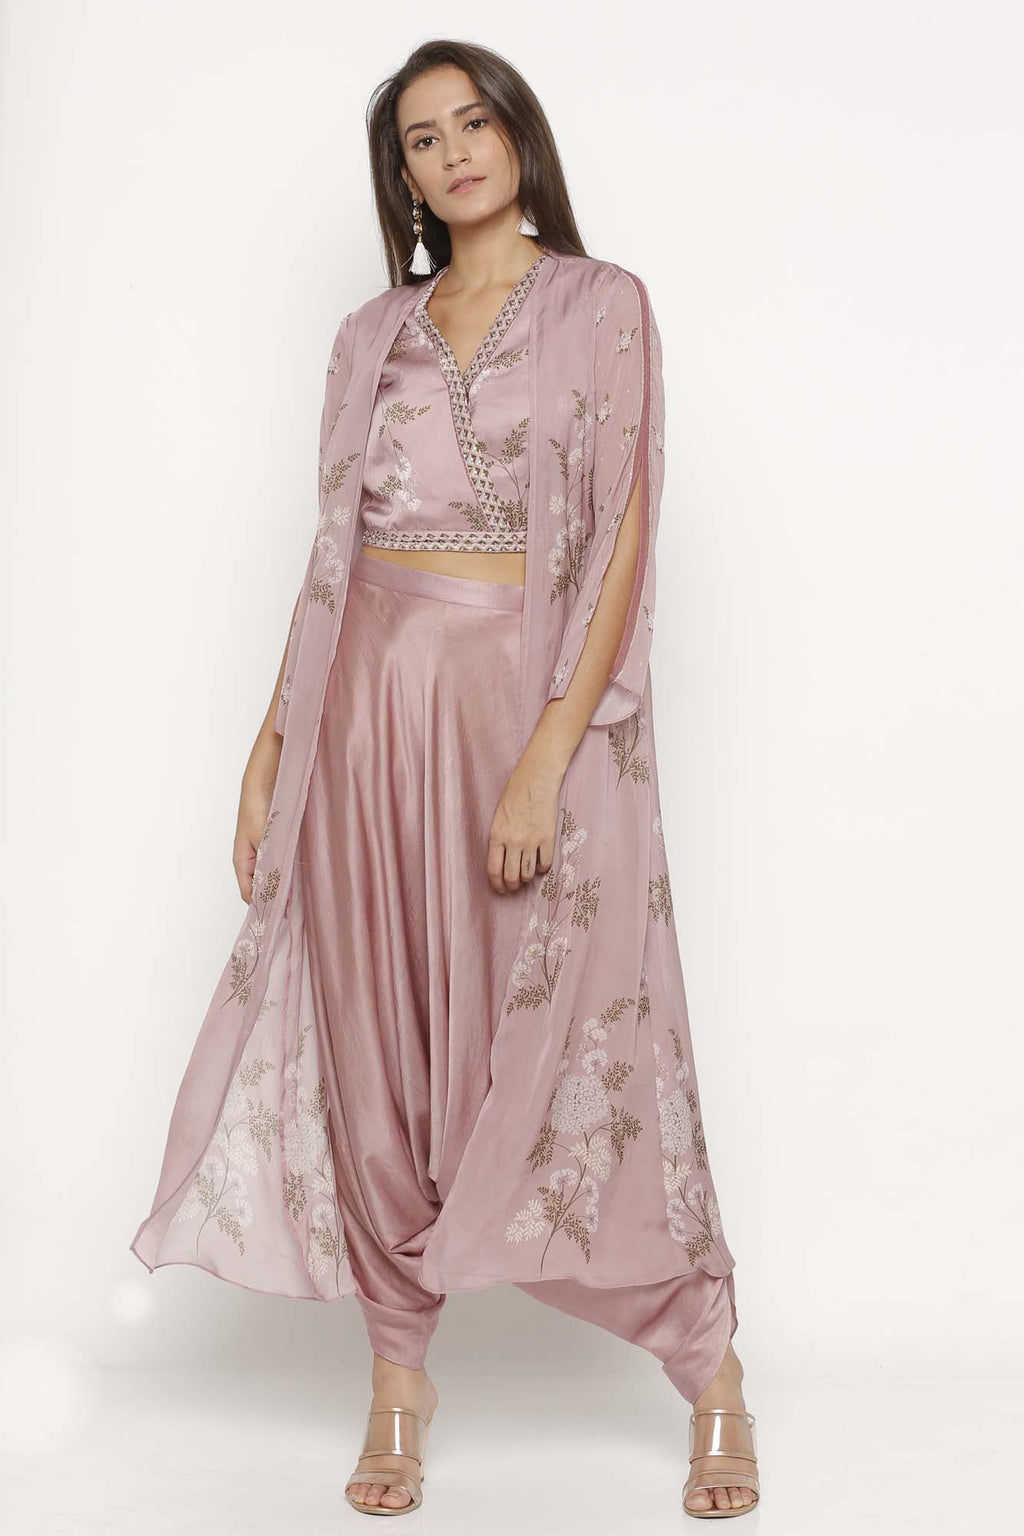 Pink Colour Dhoti Pants With Crop Top And Jacket - Riviera Closet